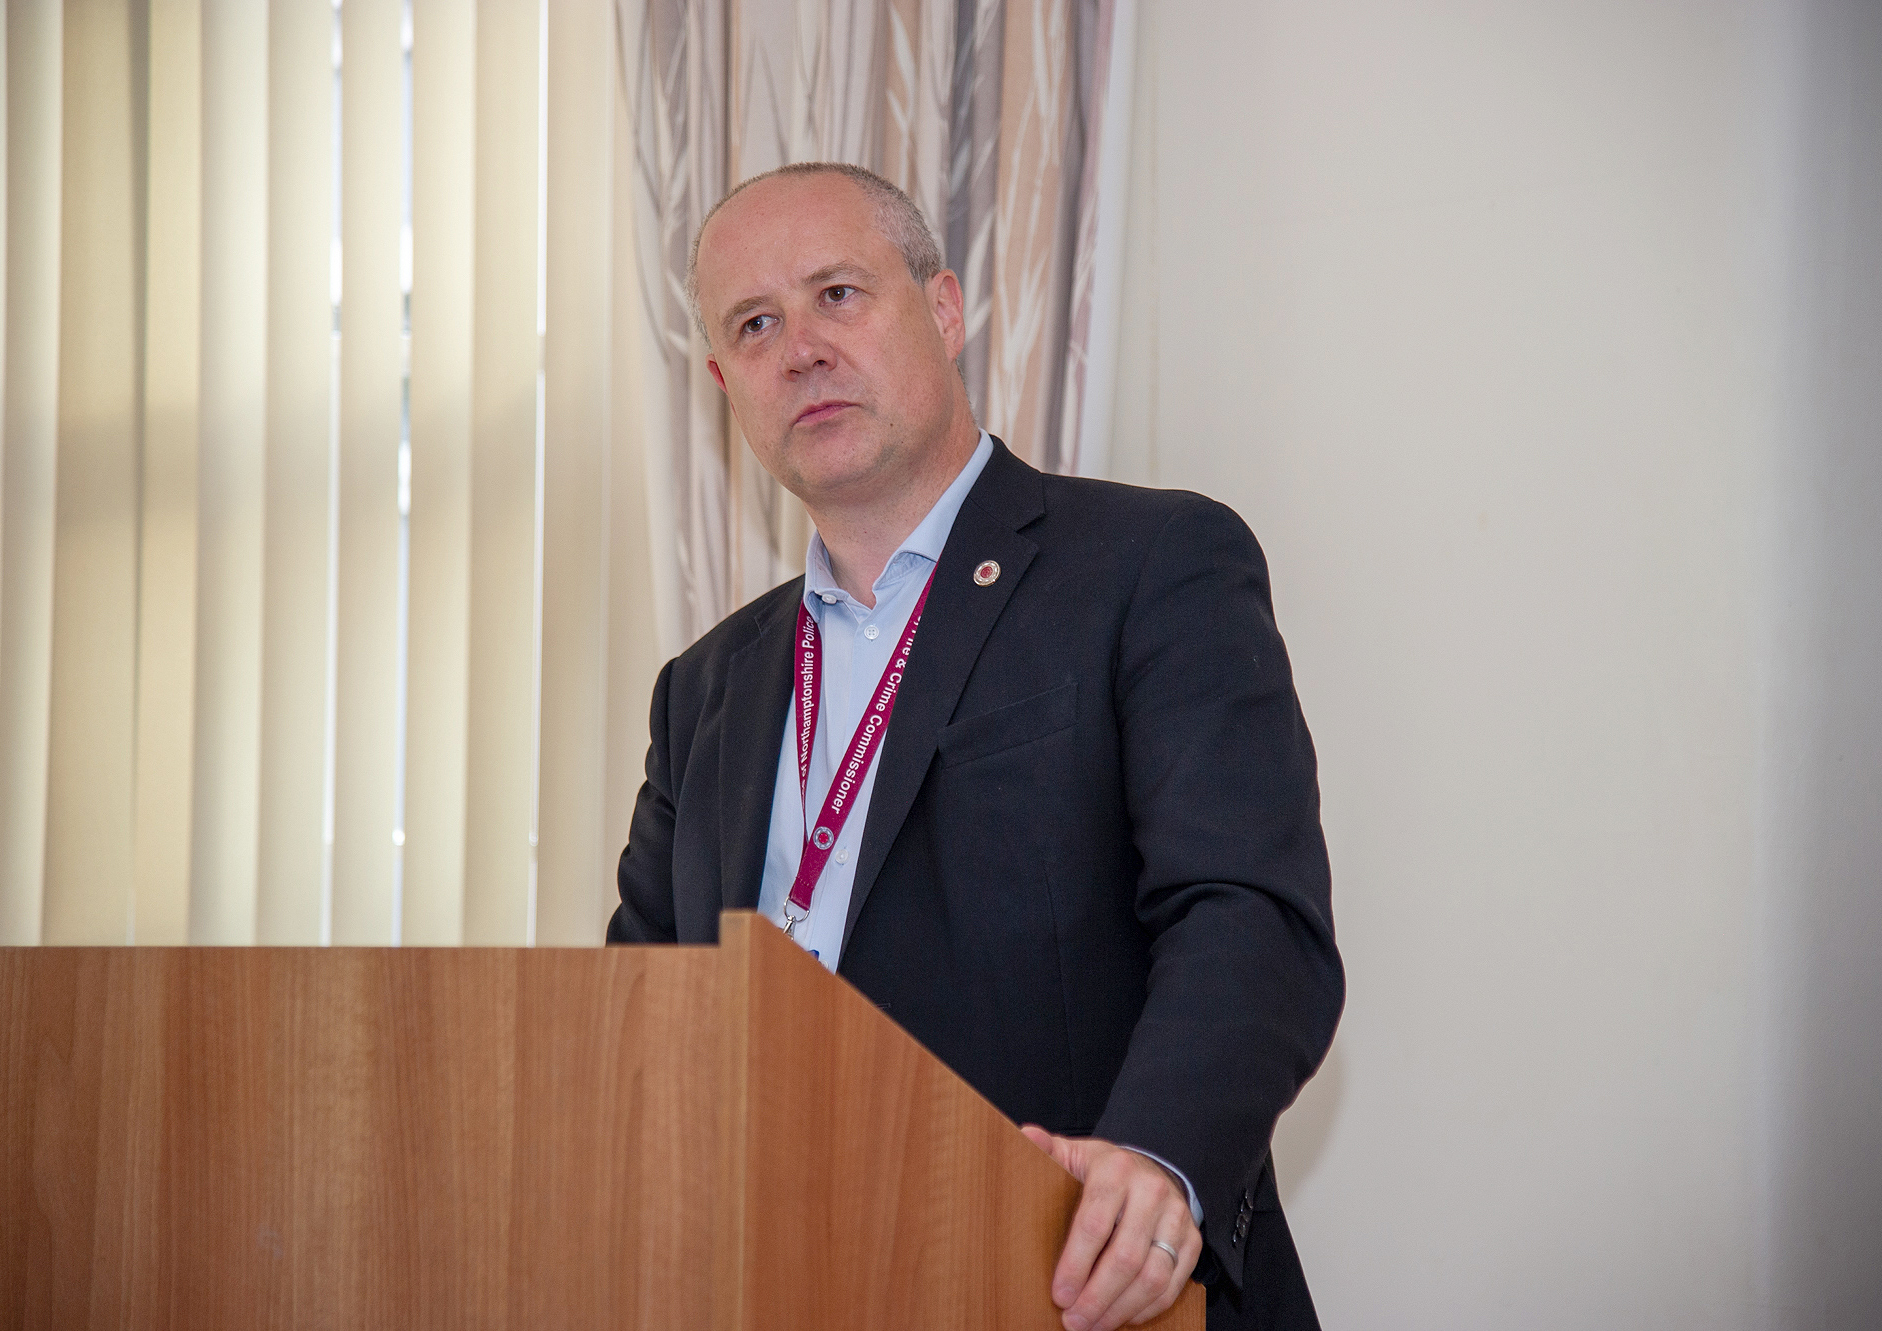 Northamptonshire Police, Fire and Crime Commissioner Stephen Mold